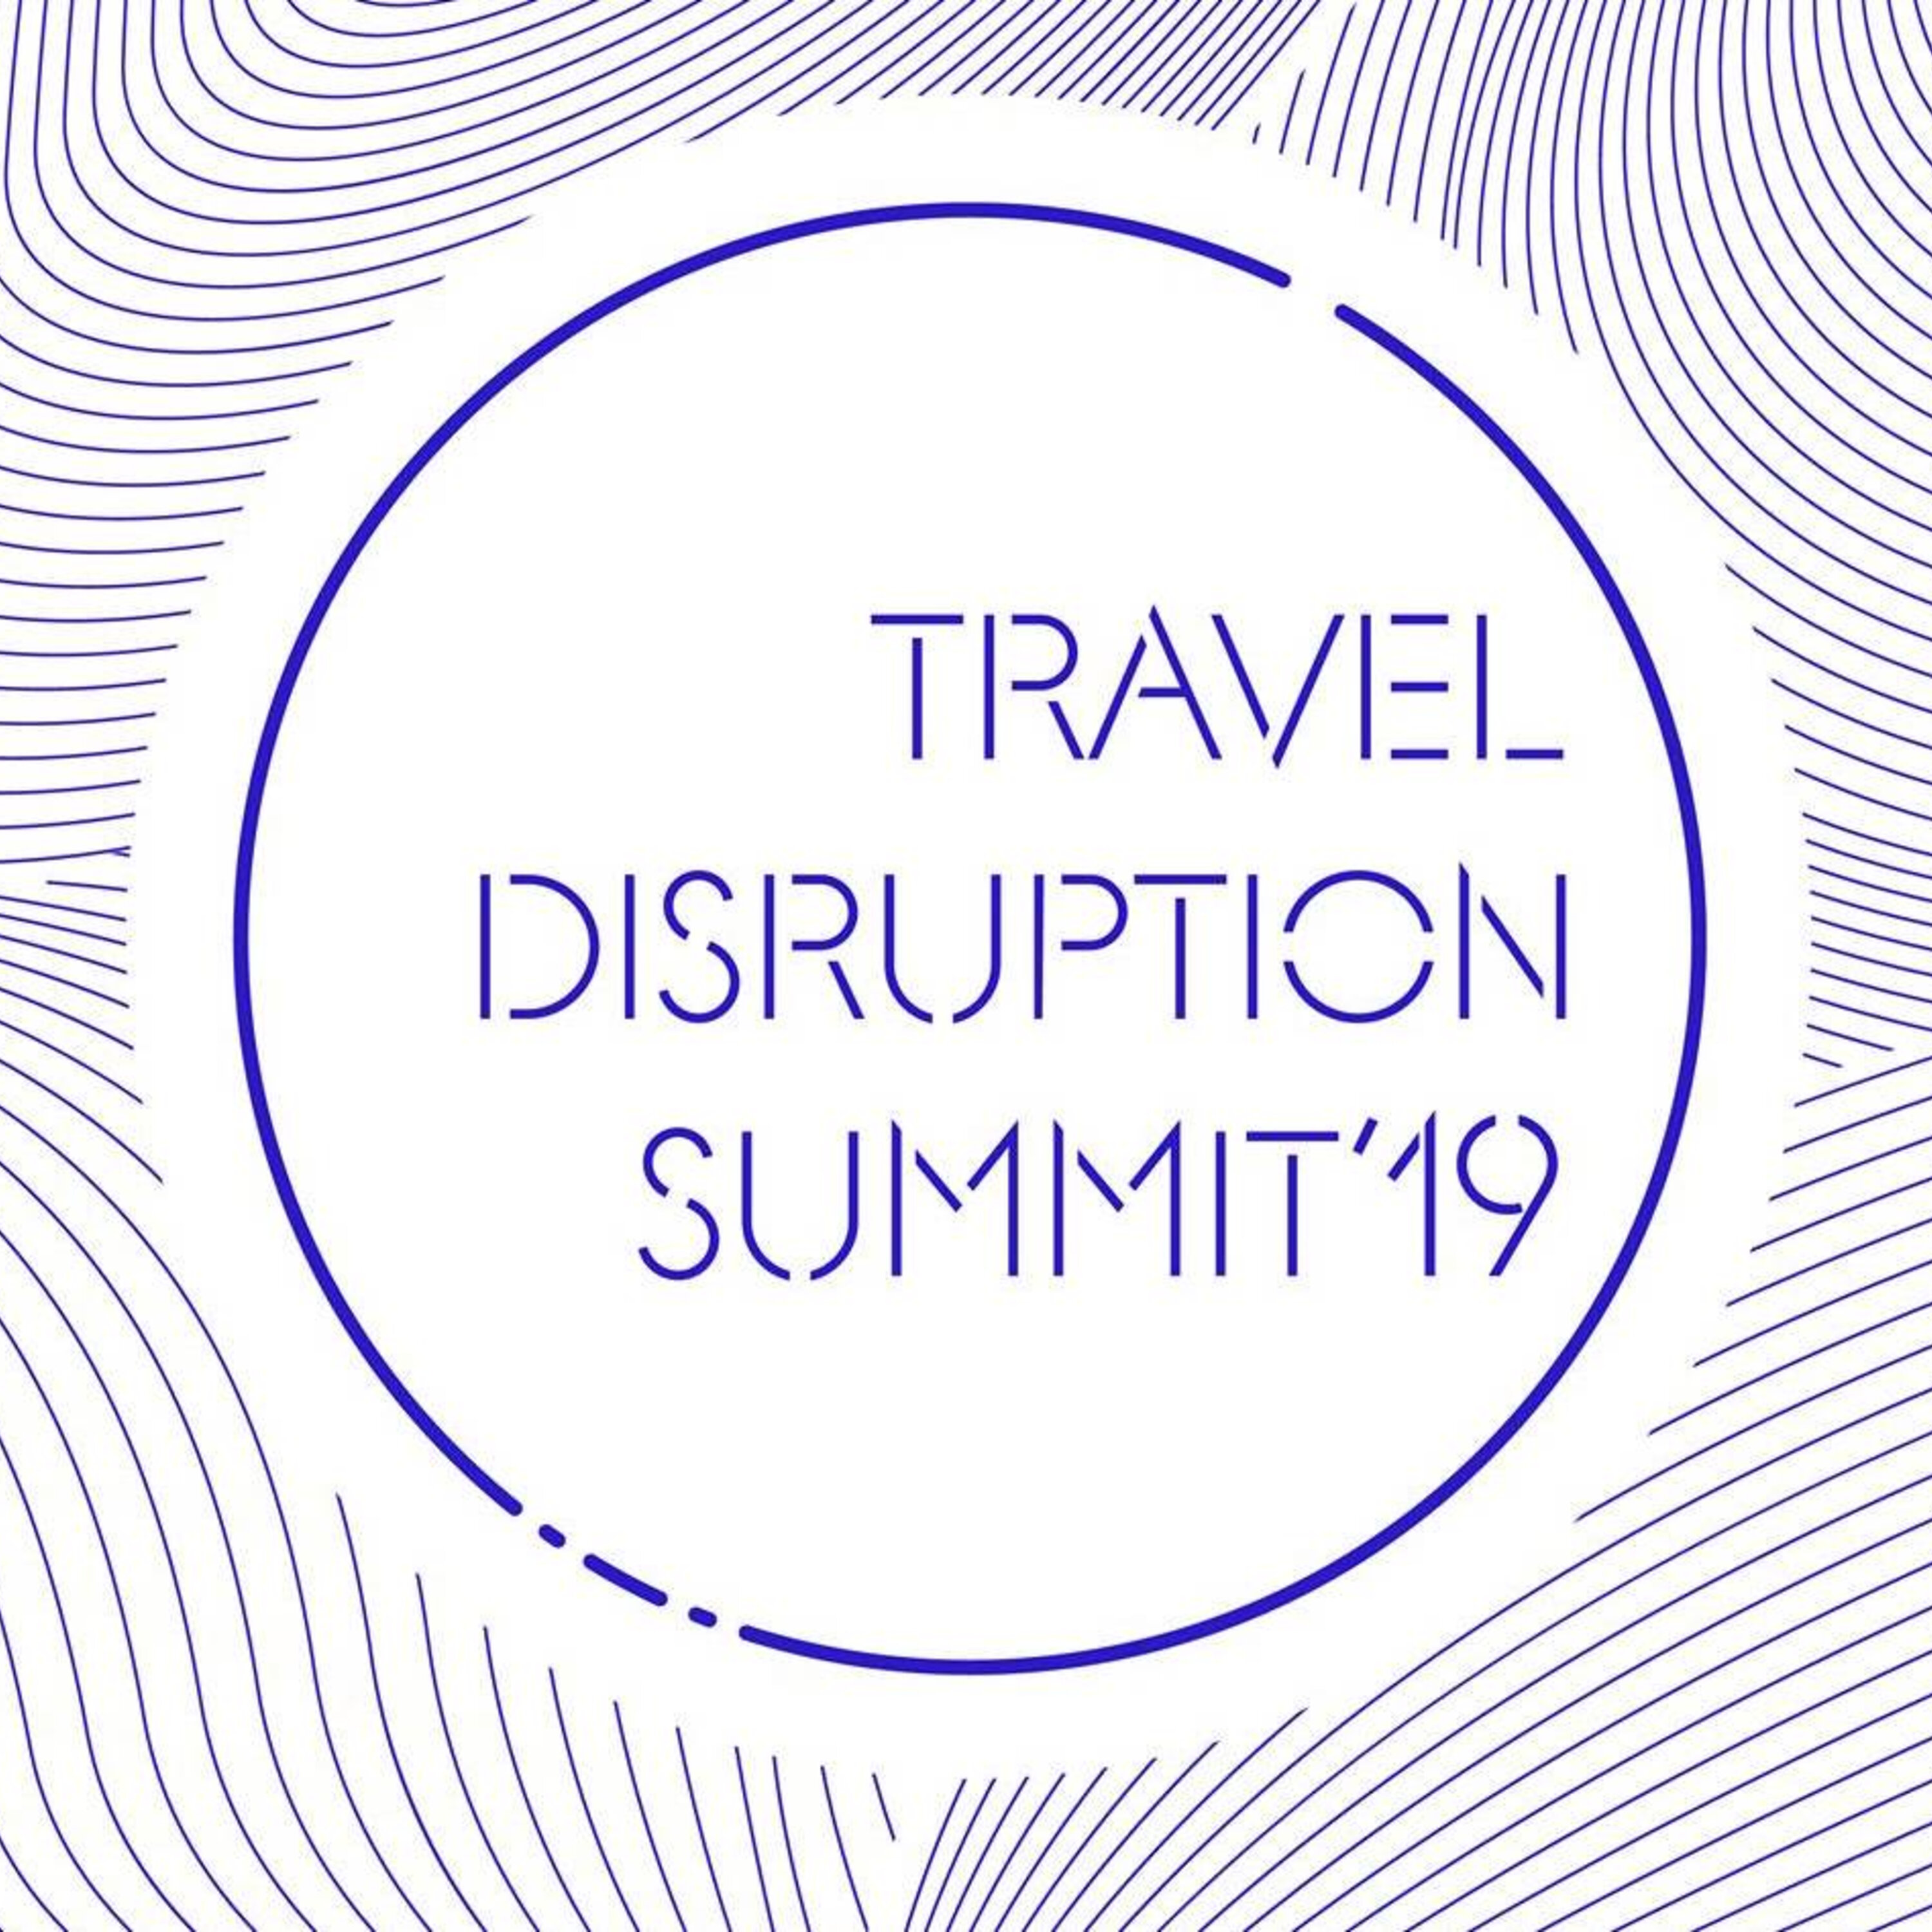 When Entreprise Companies Pitch Travel Startups - Reverse Startup Pitch